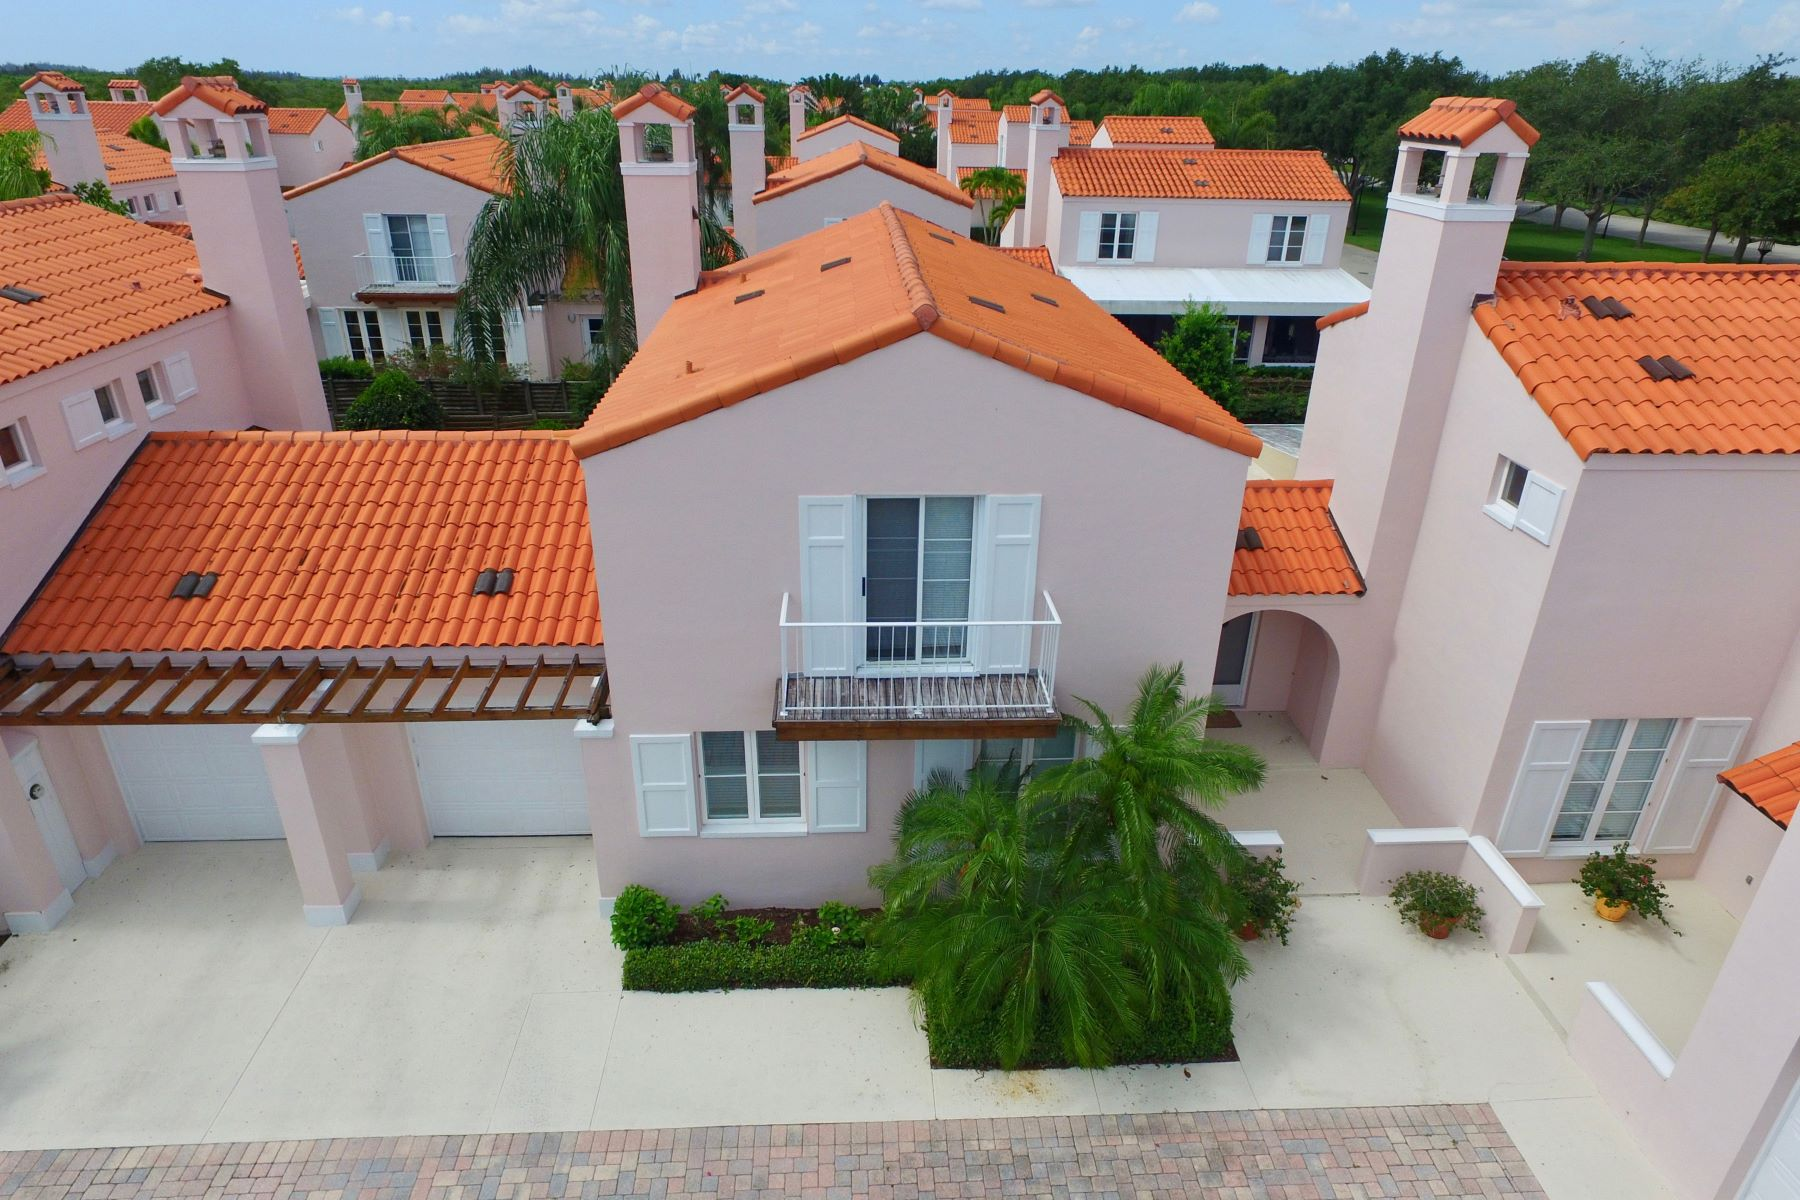 Property for Sale at Enchanting Mediterranean Home at Grand Harbor 4926 Wood Duck Circle Vero Beach, Florida 32967 United States